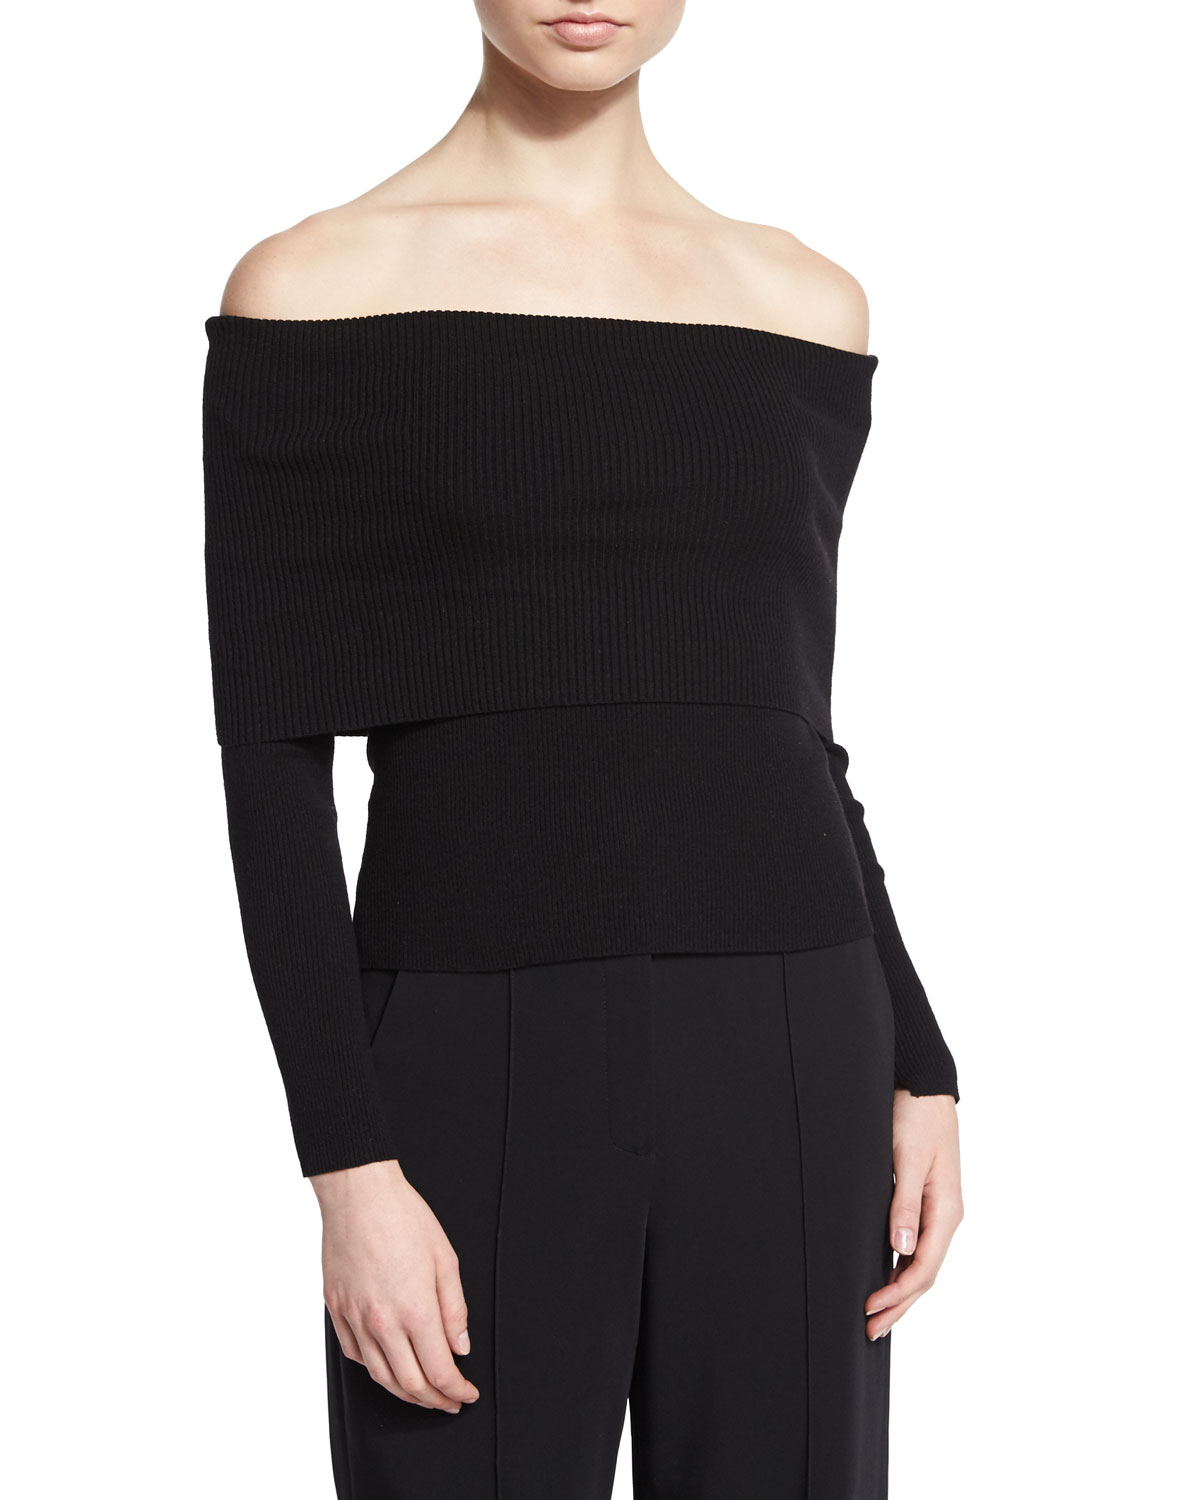 Monica Wool-Blend Off-the-Shoulder Sweater, Black, Size: LARGE - A.L.C.